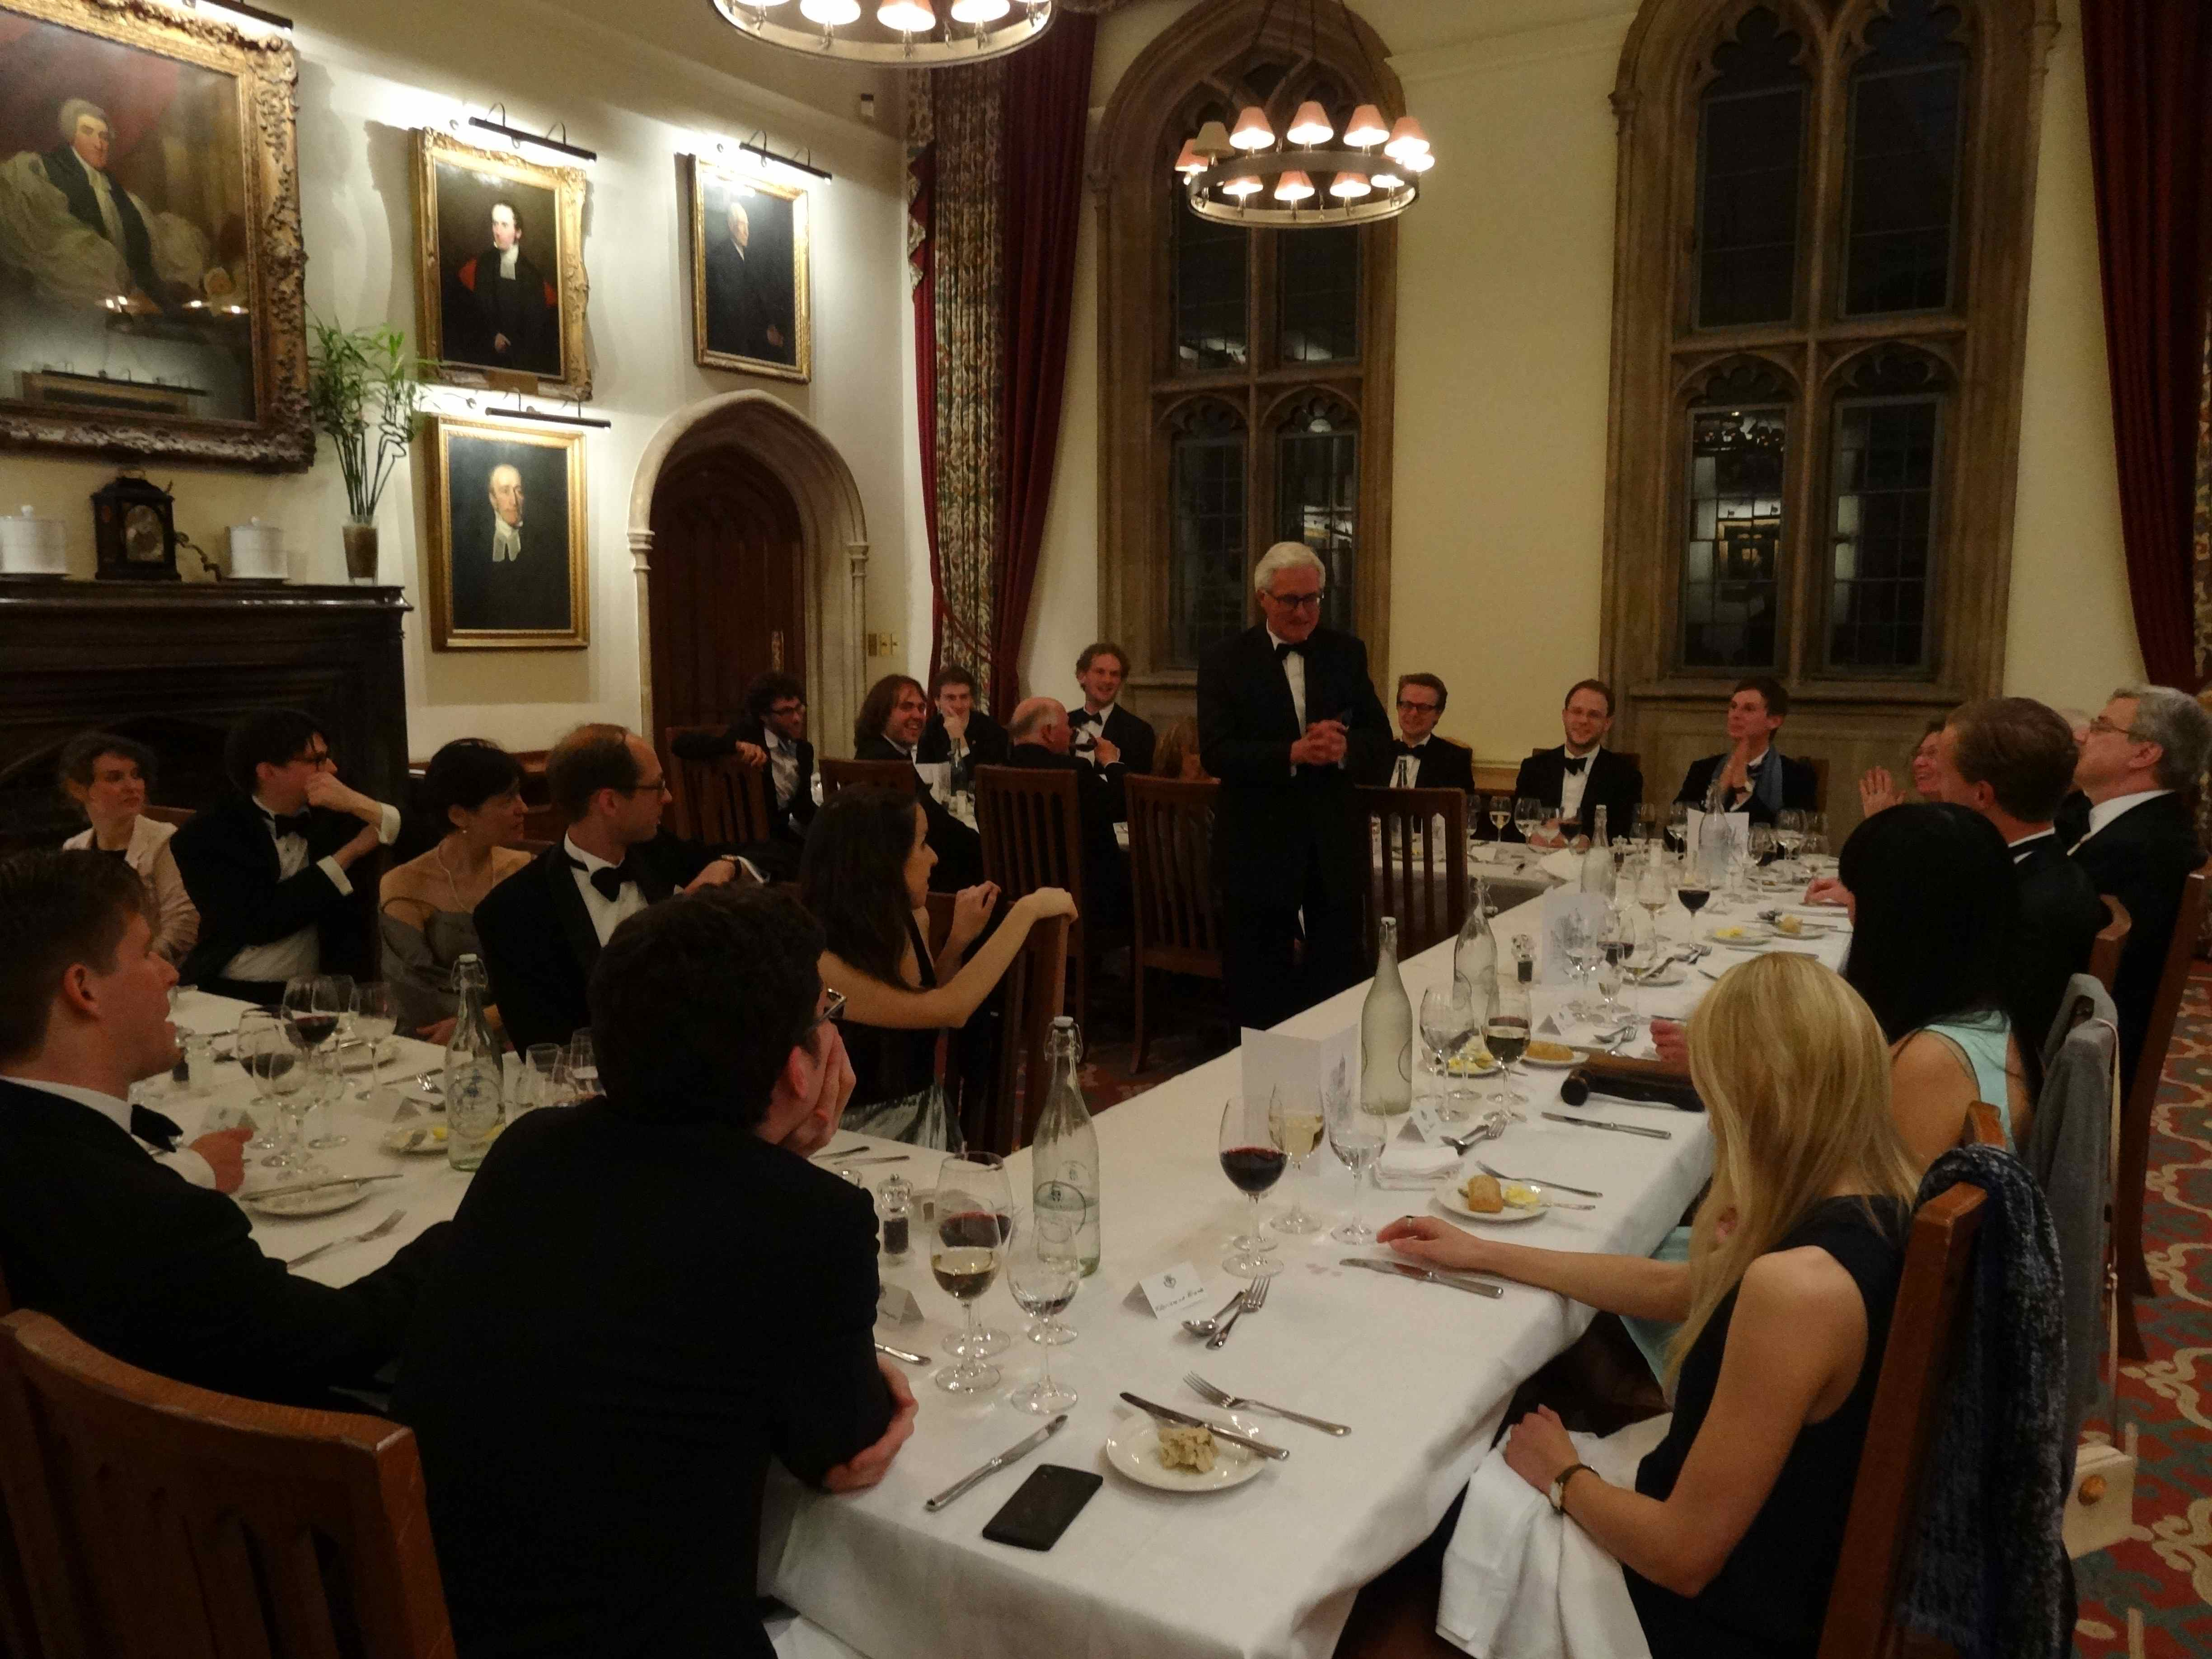 H.E. Mr Guy Trouveroy, ambassador of the Kingdom of Belgium to the Court of St James's, addressing the Oxford OUSL Dinner